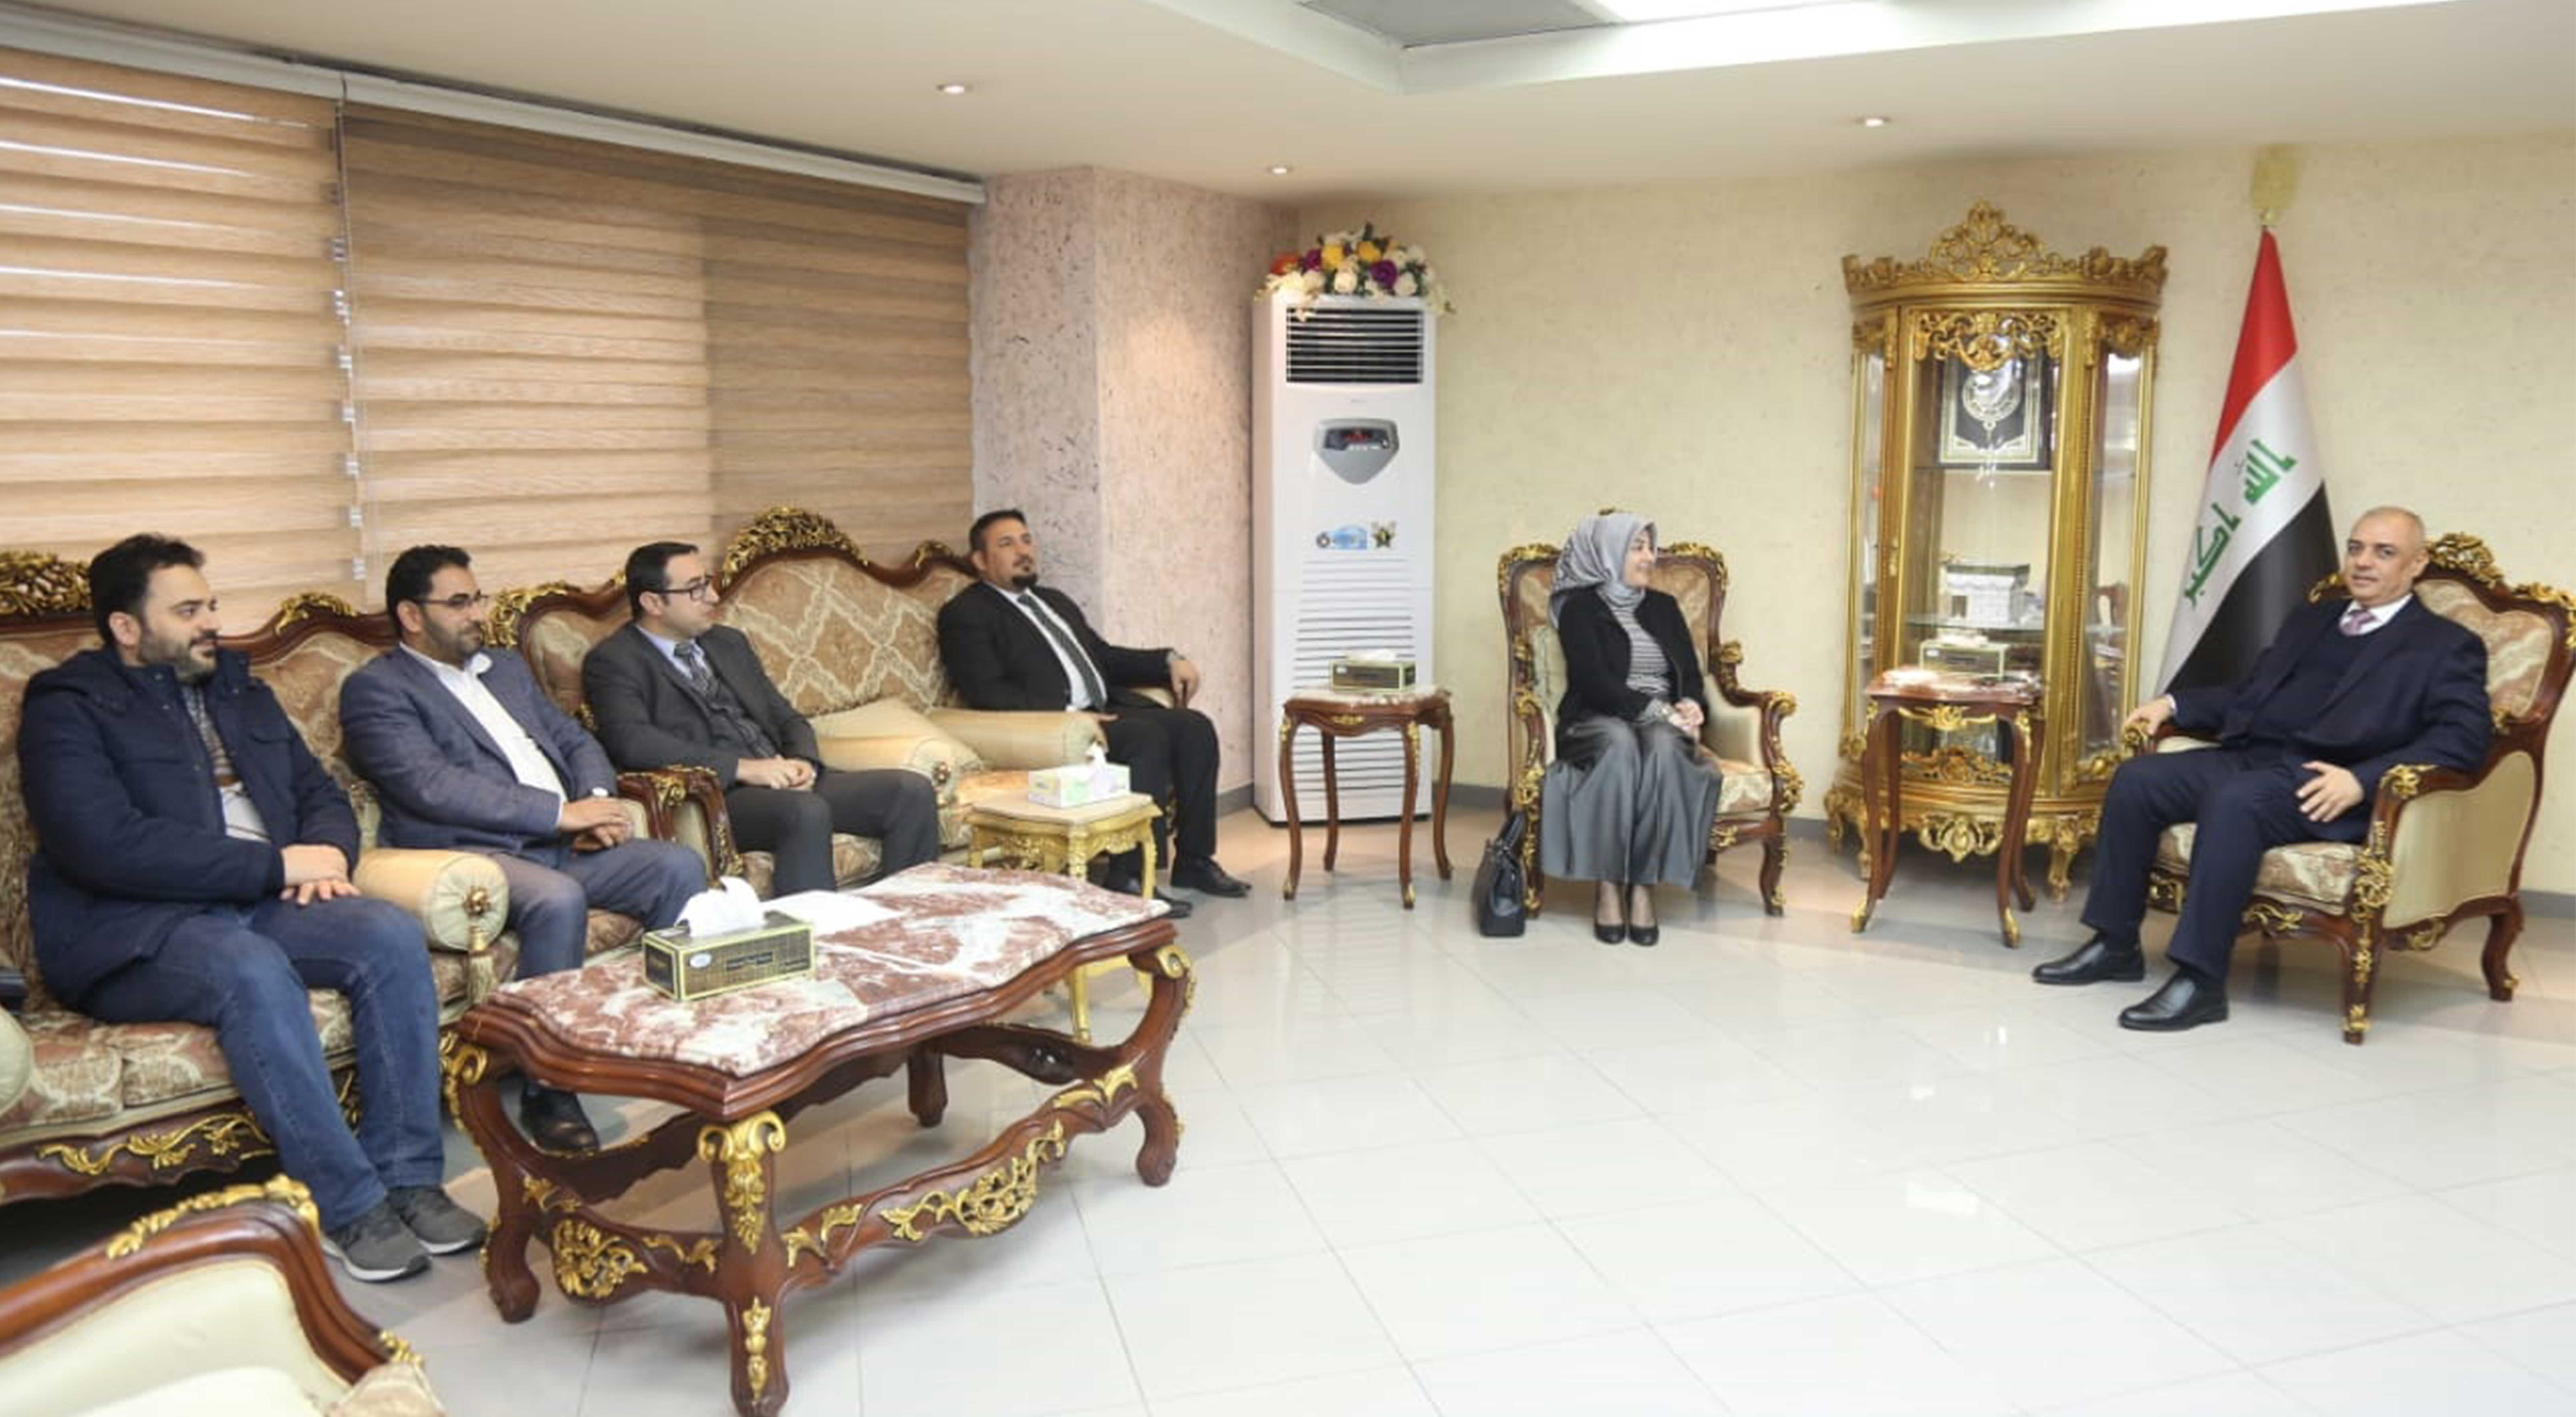 The Minister of Transport receives a delegation of the Government Information and Communication Office in the General Secretariat of the Council of Ministers and discusses with him the media work in the state institutions 2019-01-22-3